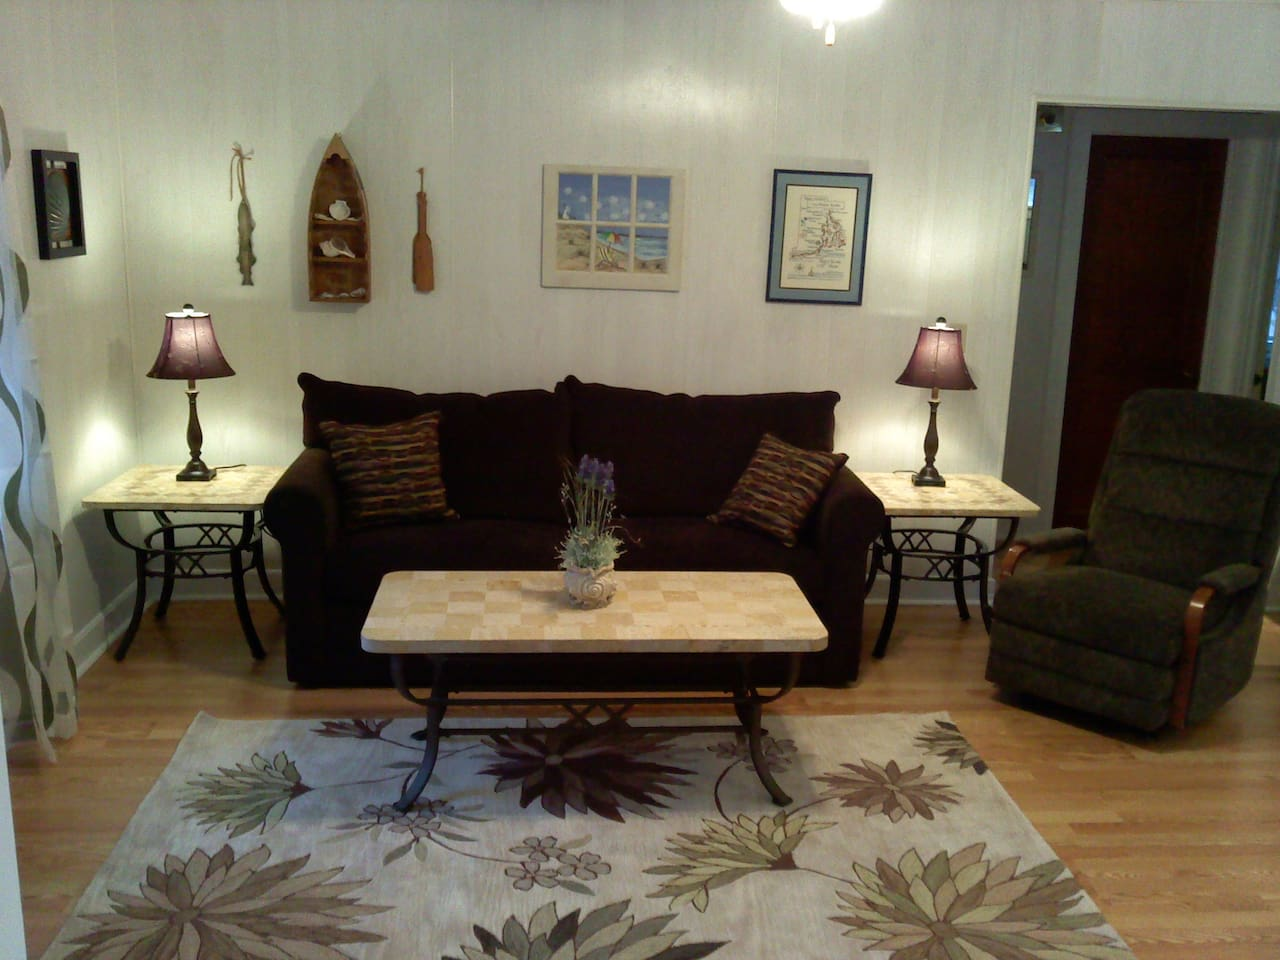 teal cottage rhode properties cottages rentals island misquamicut waterfront